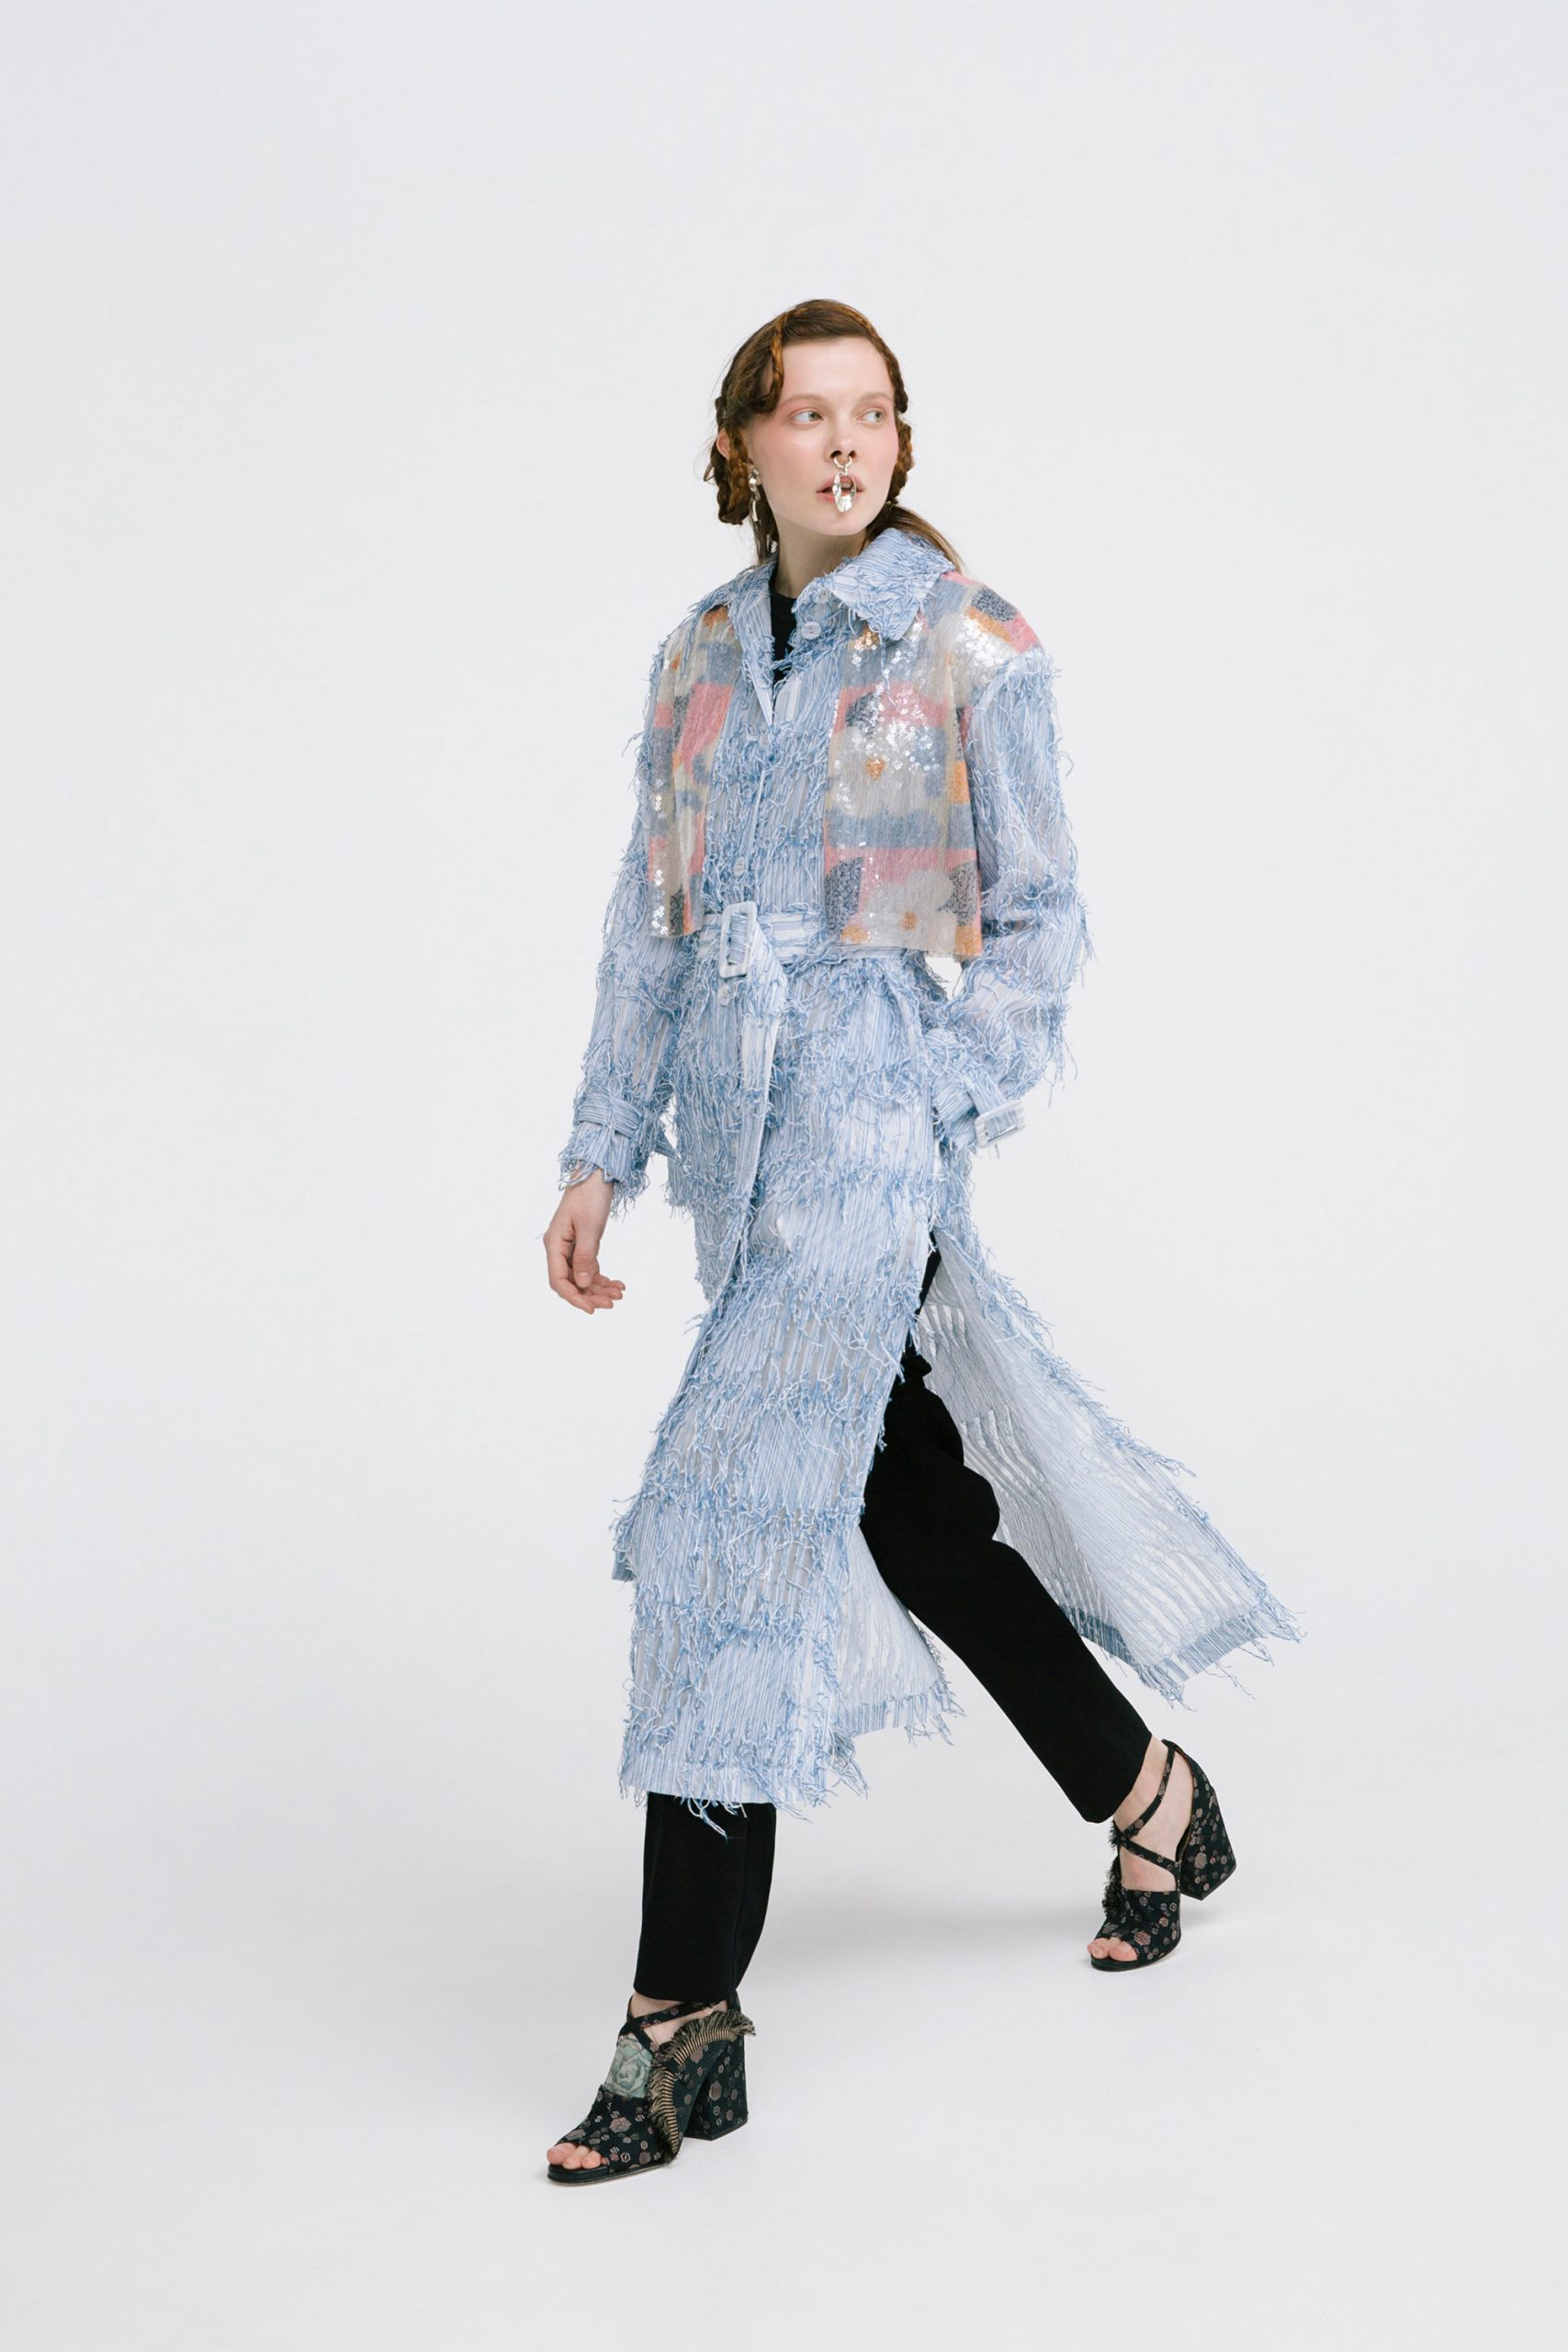 Ola Ola Spring 2020 Fashion Collection Photos